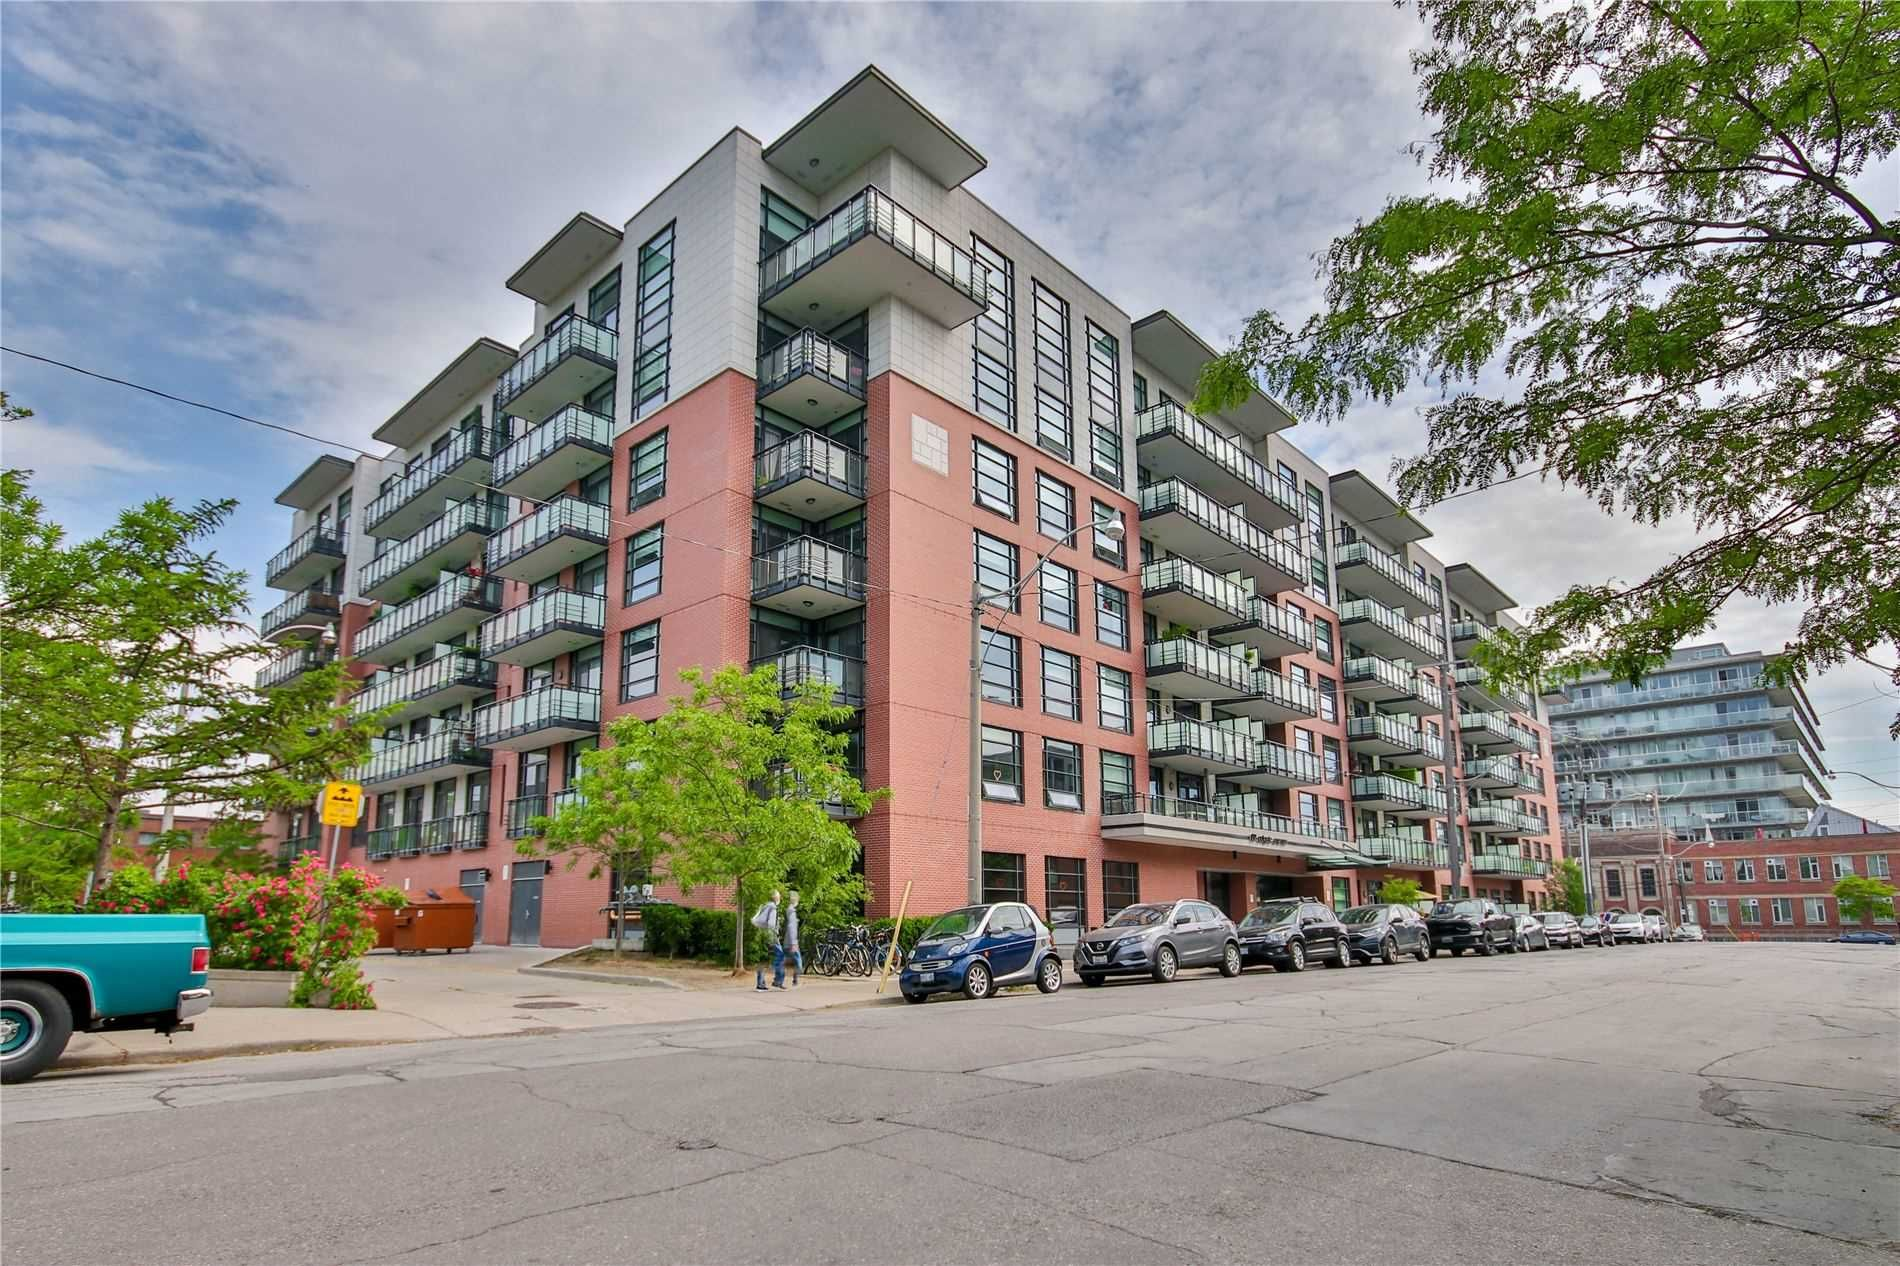 88 Colgate Ave, unit 608 for rent in Toronto - image #2